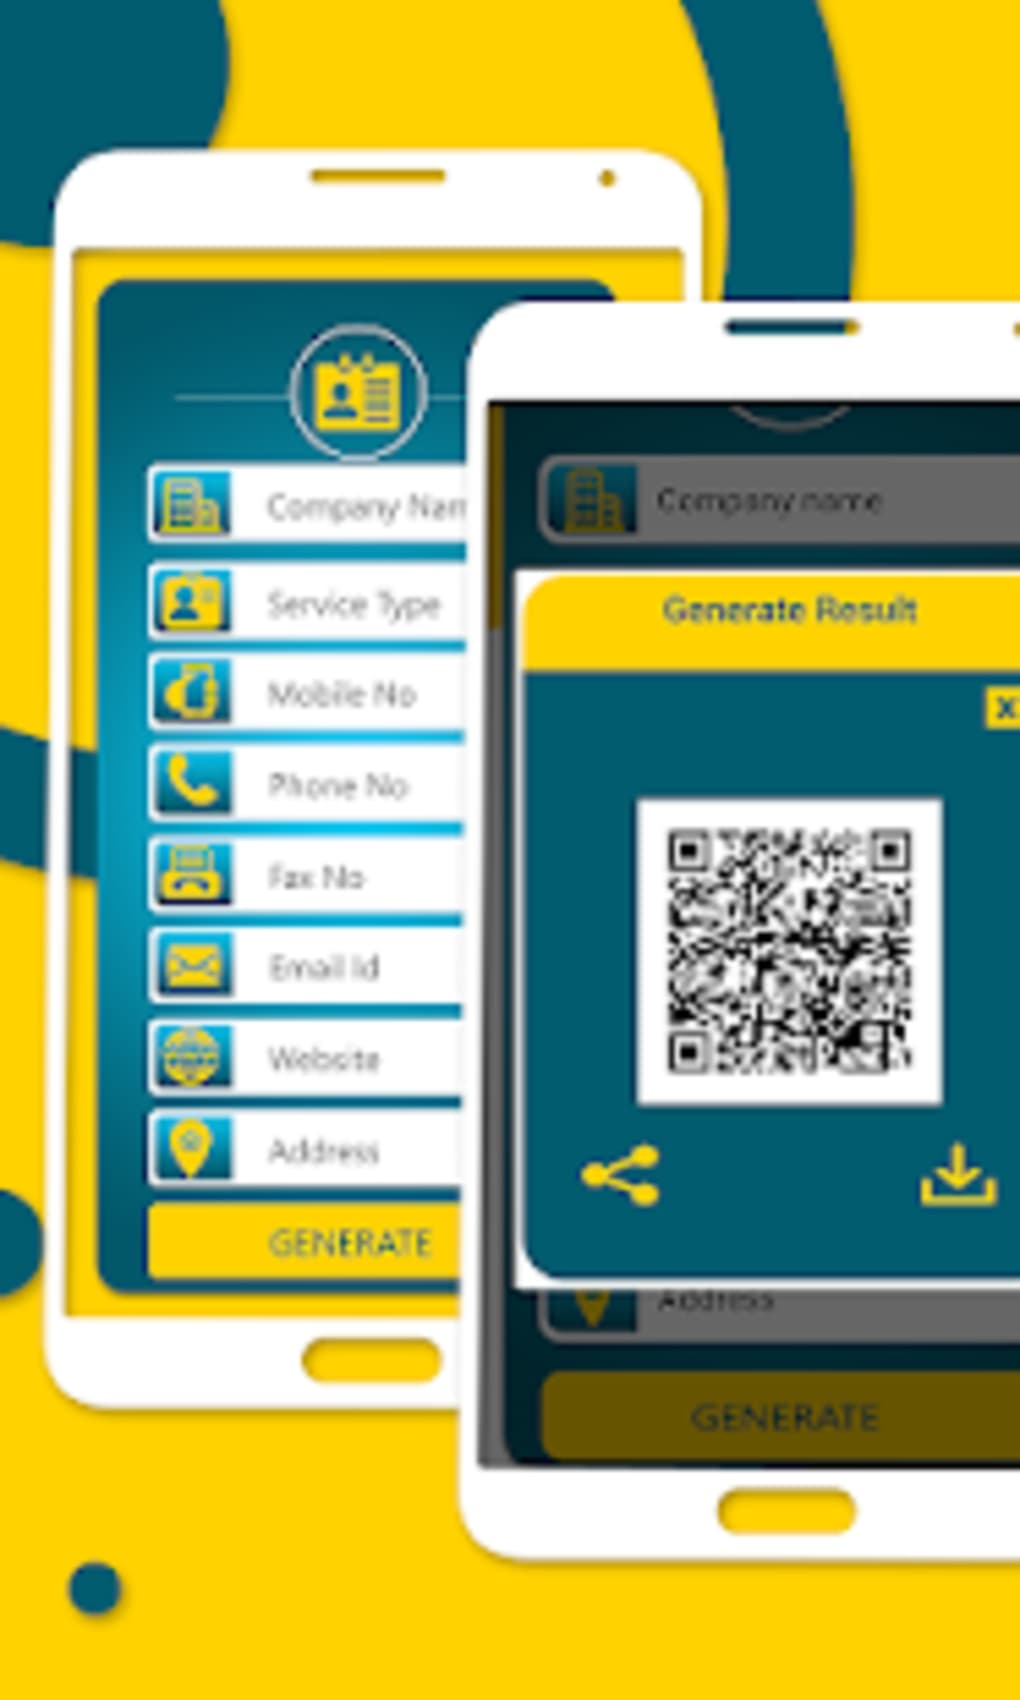 Whatscan: QR Code Reader Scanner Barcode scan for Android - Download